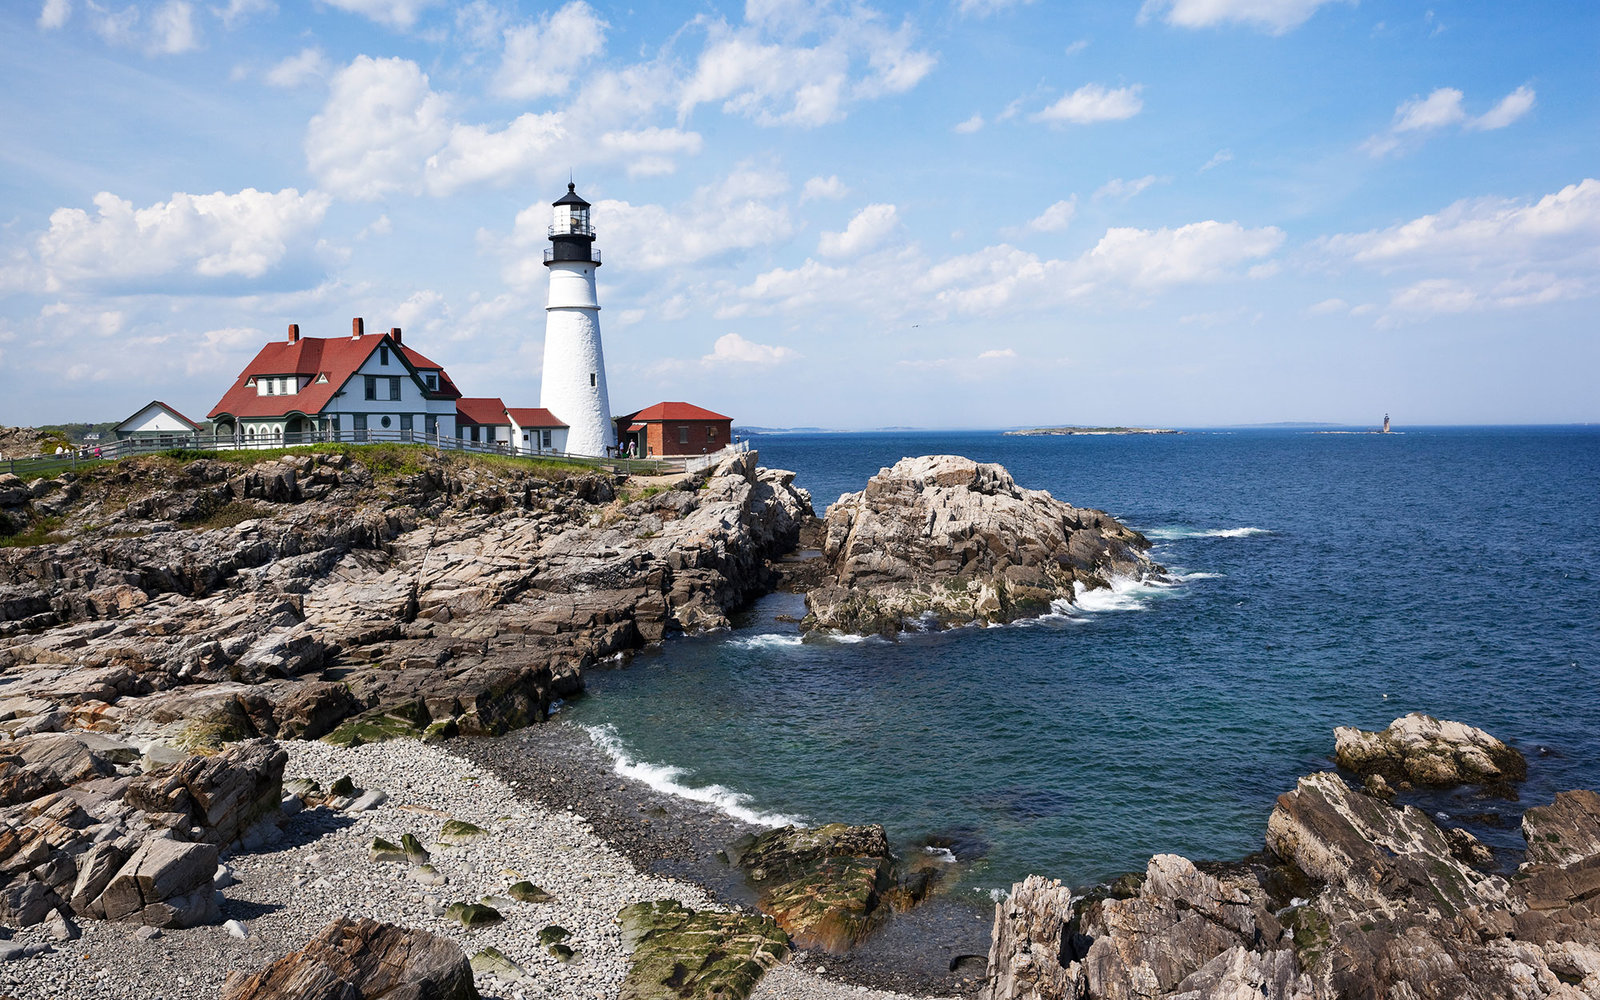 Completed in 1791, Portland Head Light is the oldest lighthouse in Maine and is located in Cape Elizabeth, at the entrance to the primary shipping channel into Portland Harbor. It was added to the the National Register of Historic Places in 1973.